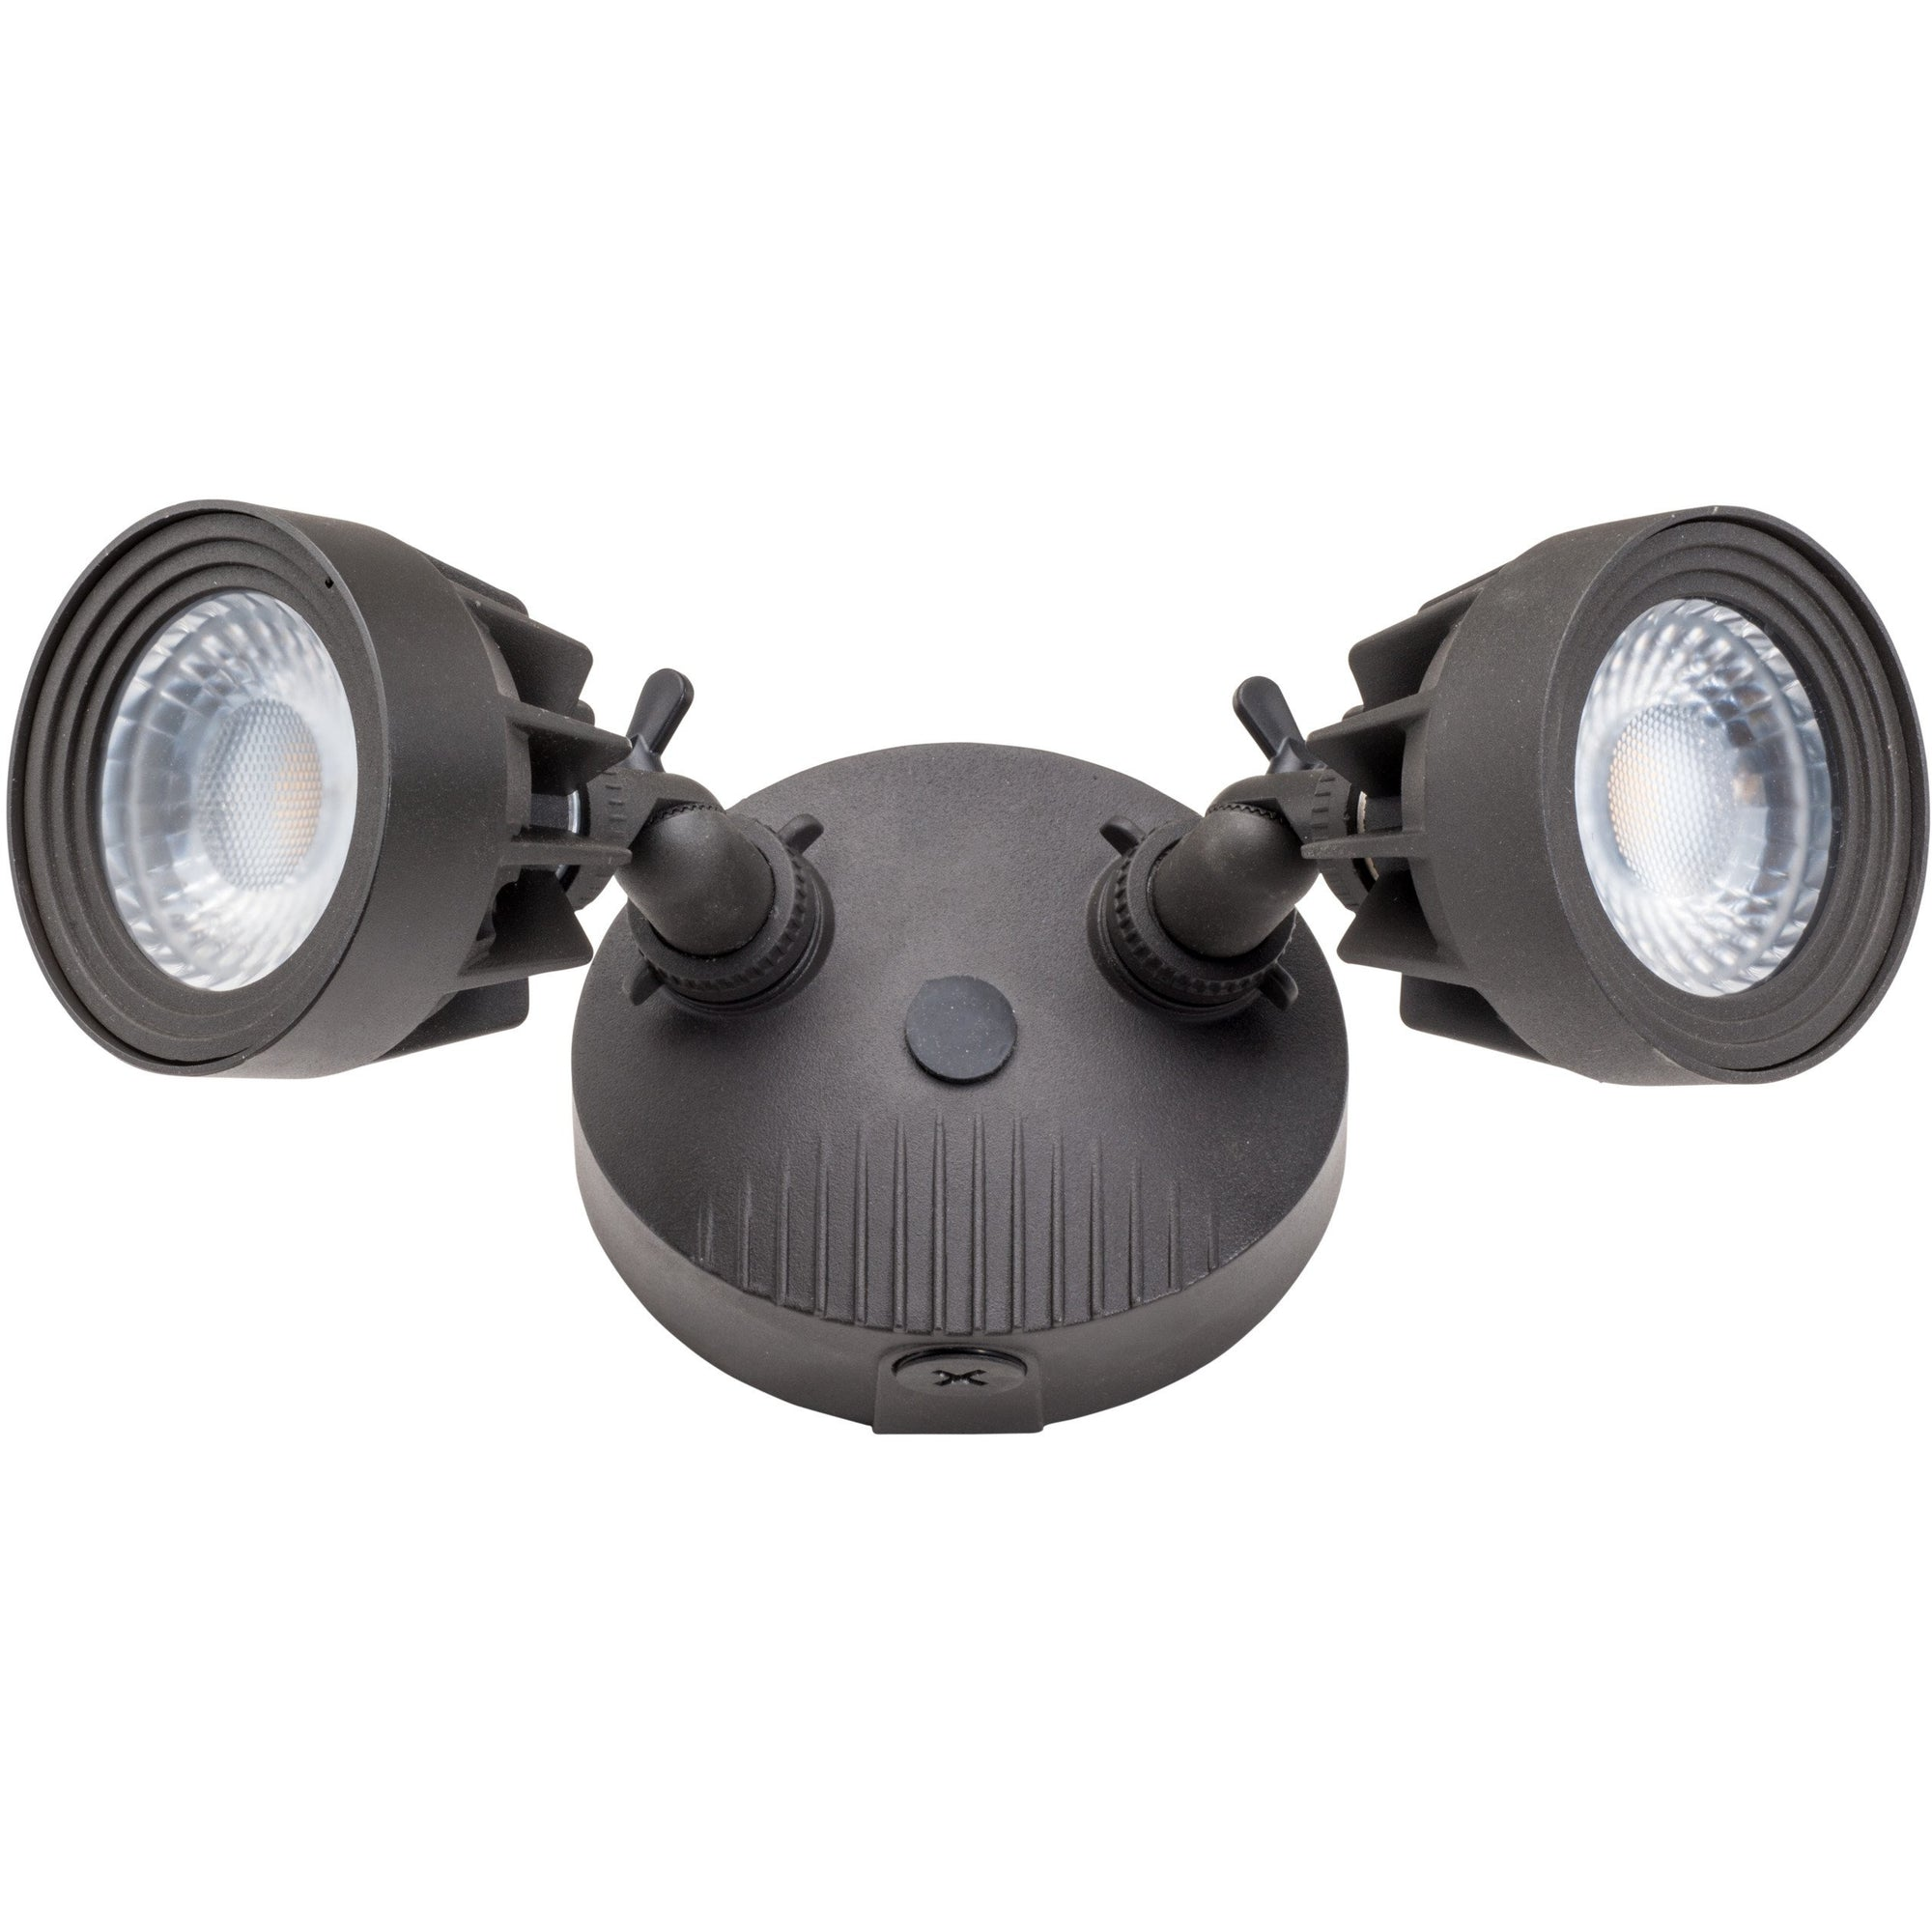 LED 24W SECURITY LIGHT BLACK (DARK BRONZE) - CommerciaLight Distributors